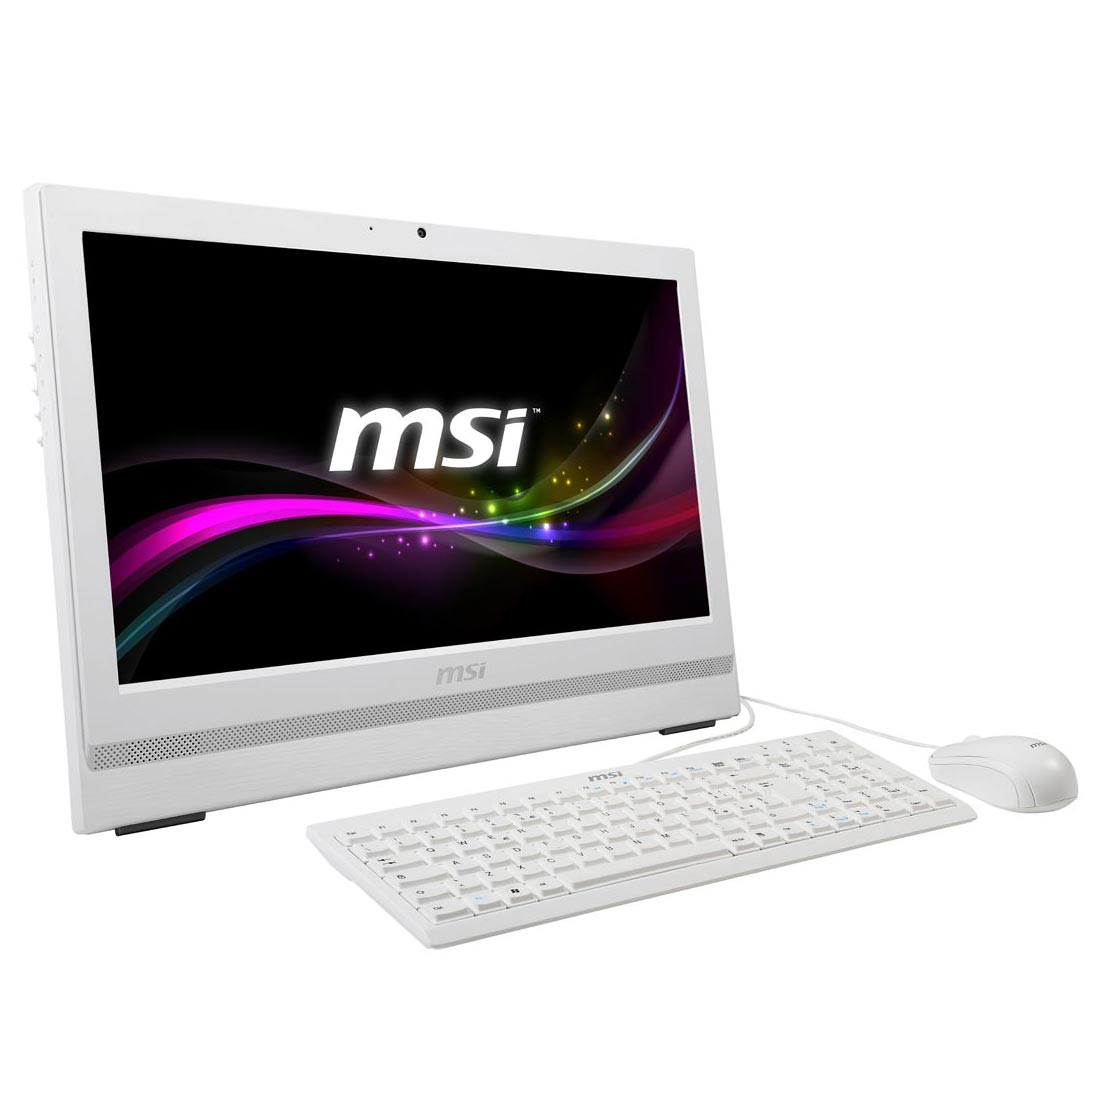 msi ap200 208xeu blanc pc de bureau msi sur. Black Bedroom Furniture Sets. Home Design Ideas